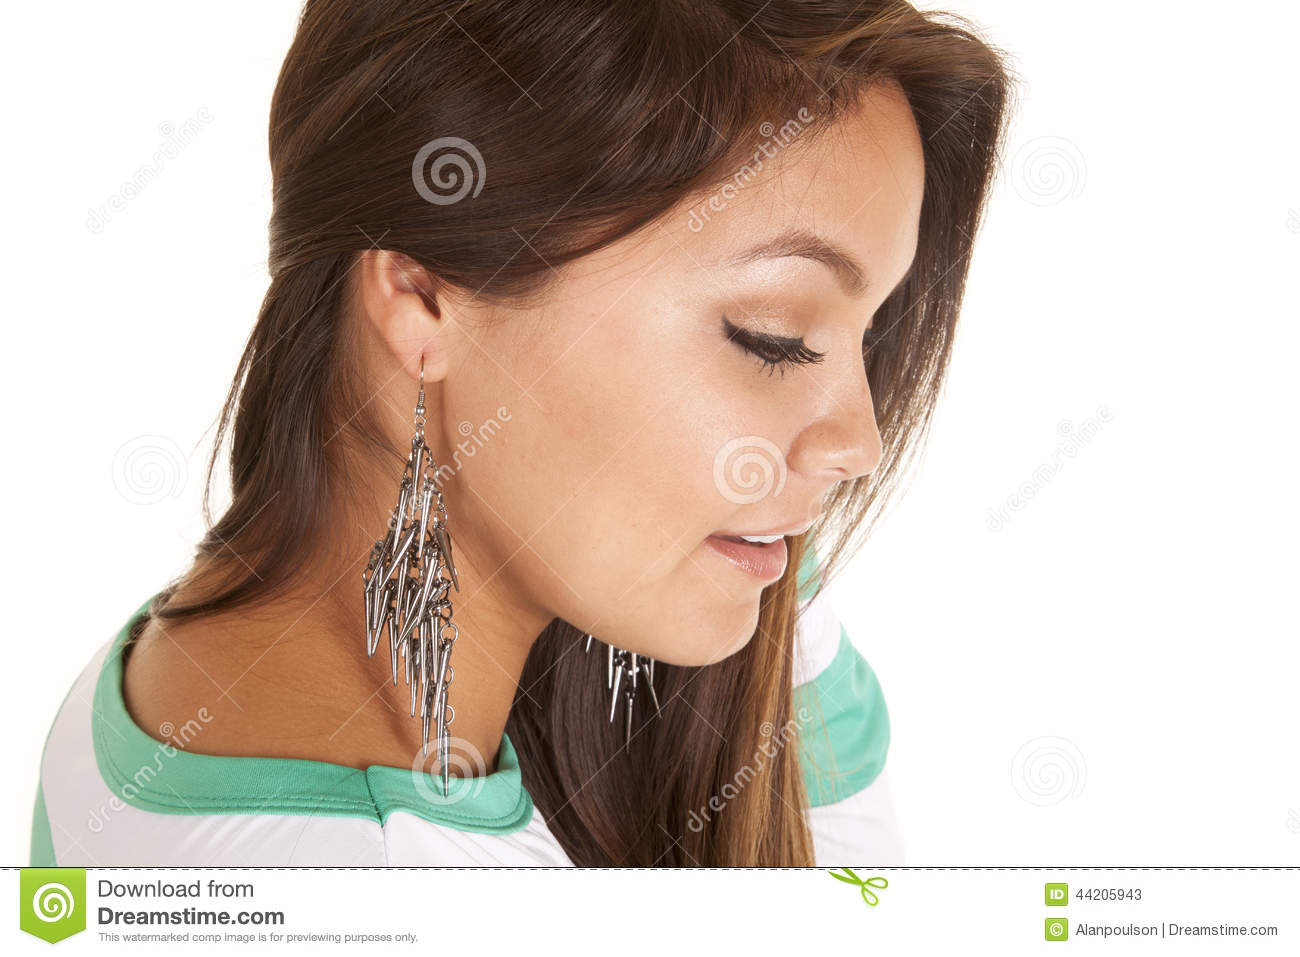 the guides tips wearing woman choosing com earrings size overstock right on hero hoop